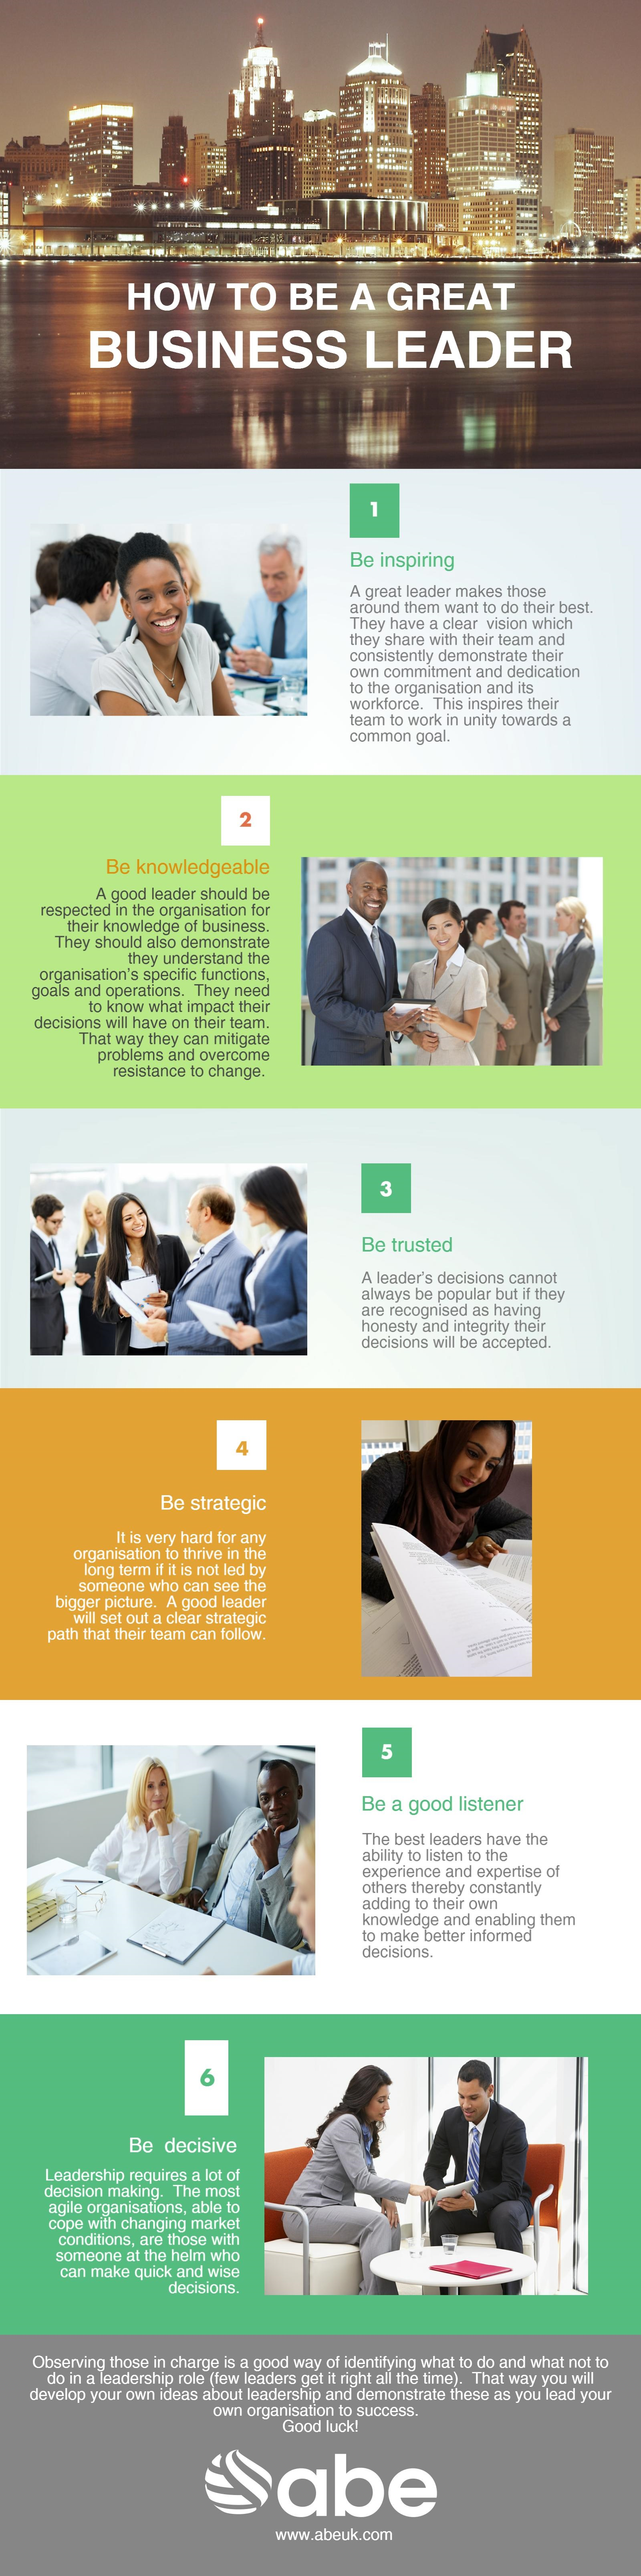 Business leader infographic